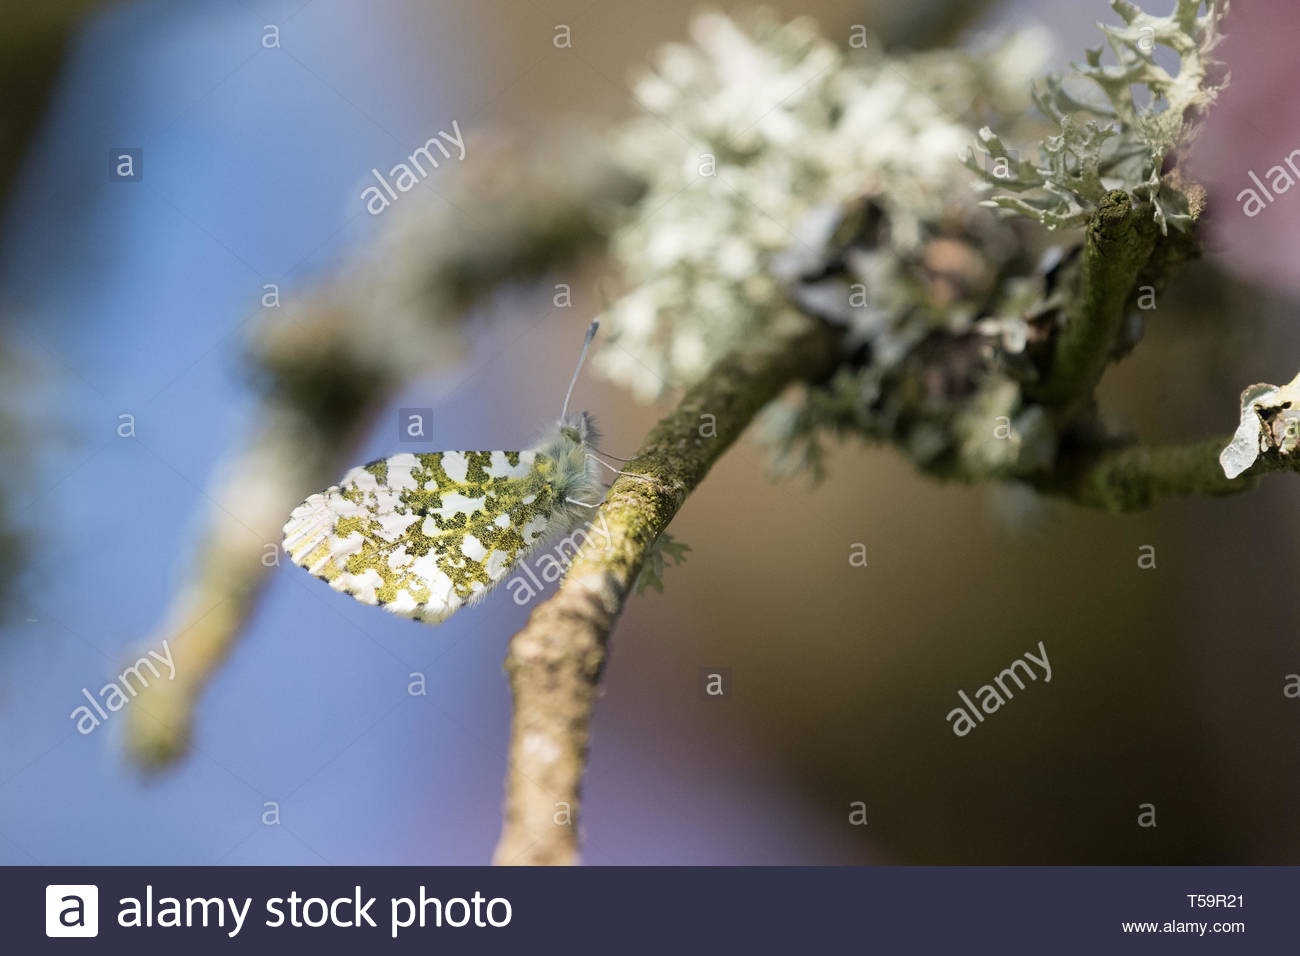 orange tip butterfly - anthocharis cardamines - beautifully camouflaged on the branch of a lichen covered tree - Scotland, UK Stock Photo